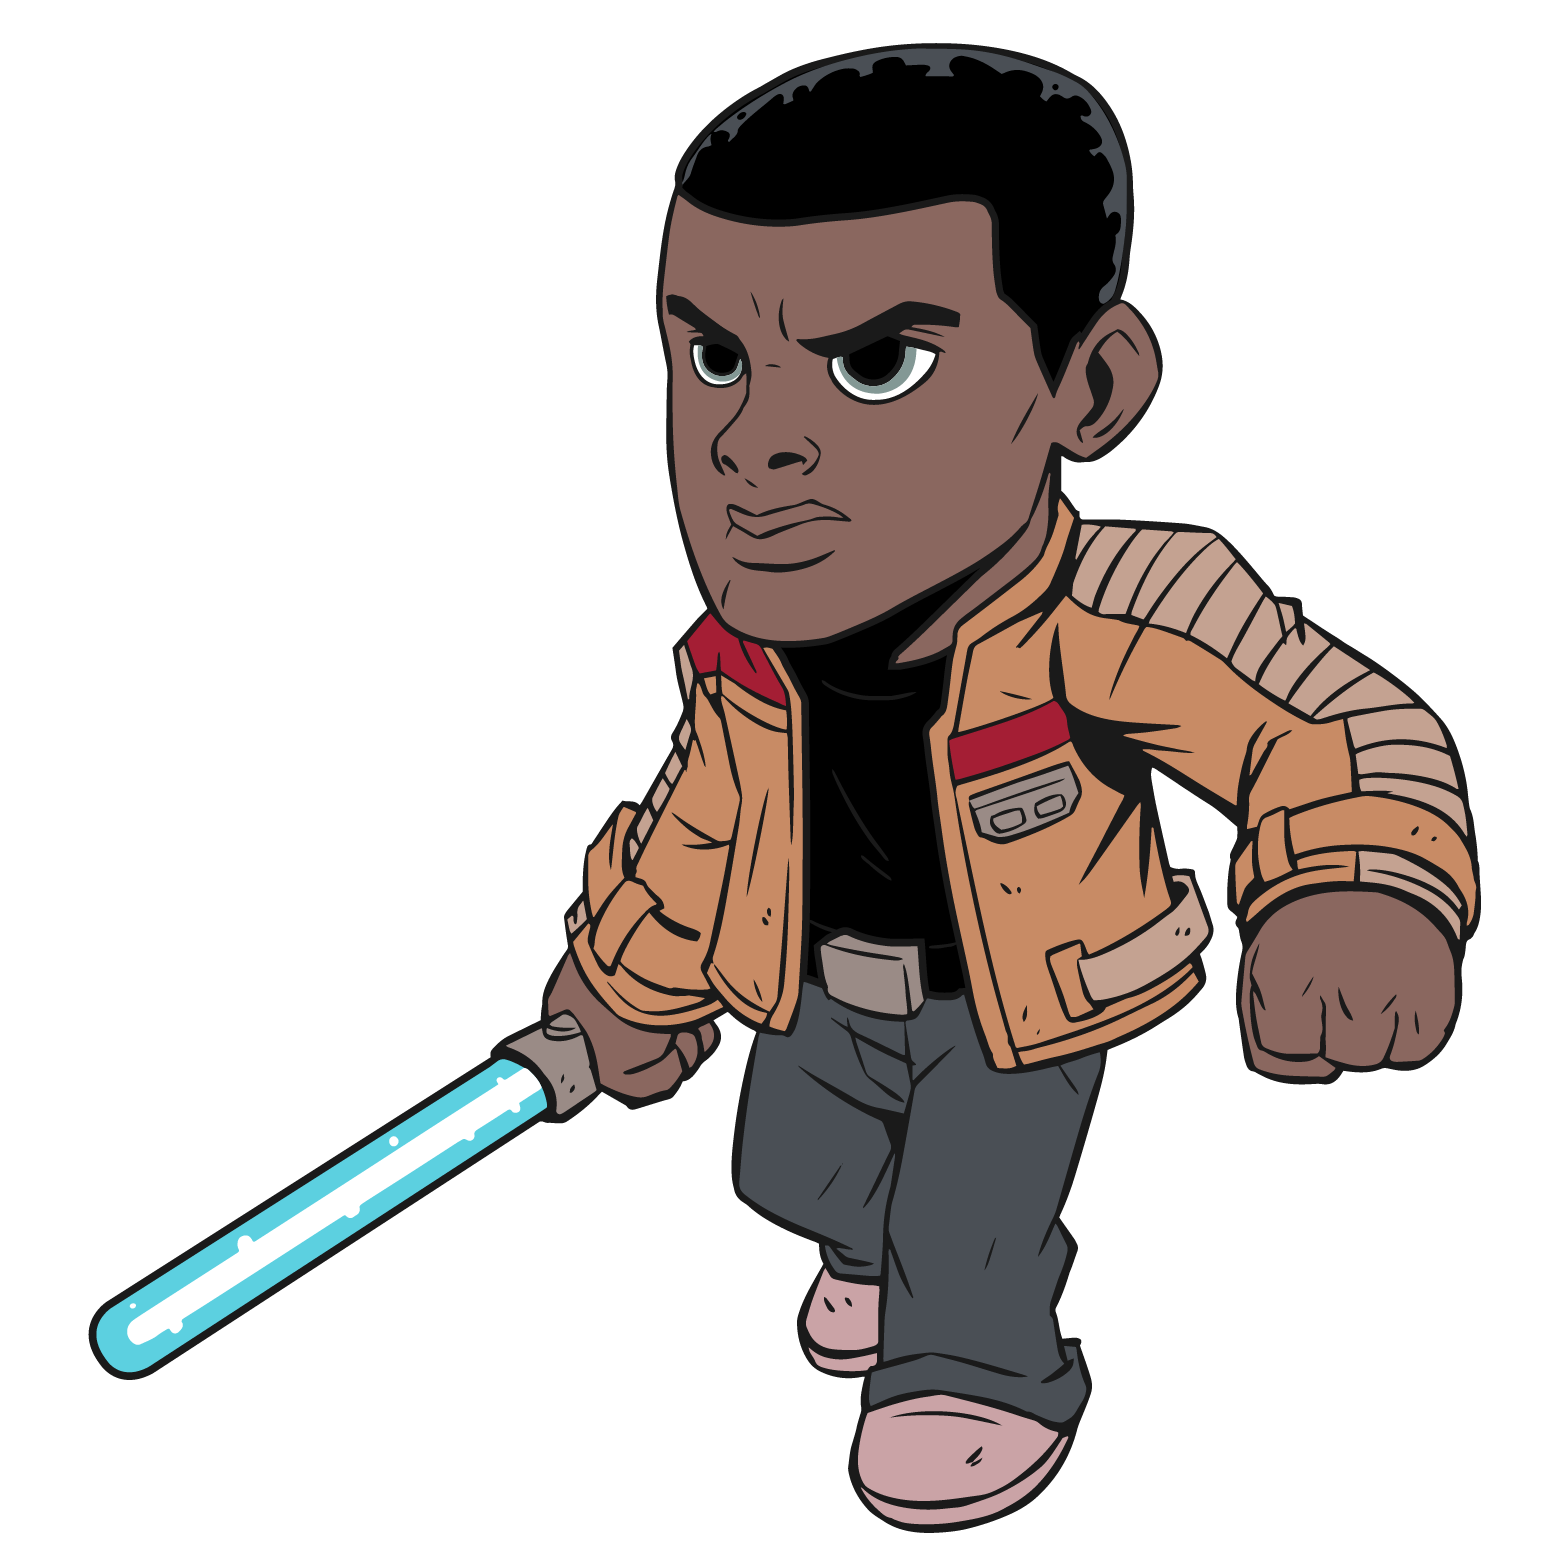 Finn star wars clipart png transparent Finn Star Wars: The Clone Wars Star Wars Celebration - stormtrooper ... png transparent